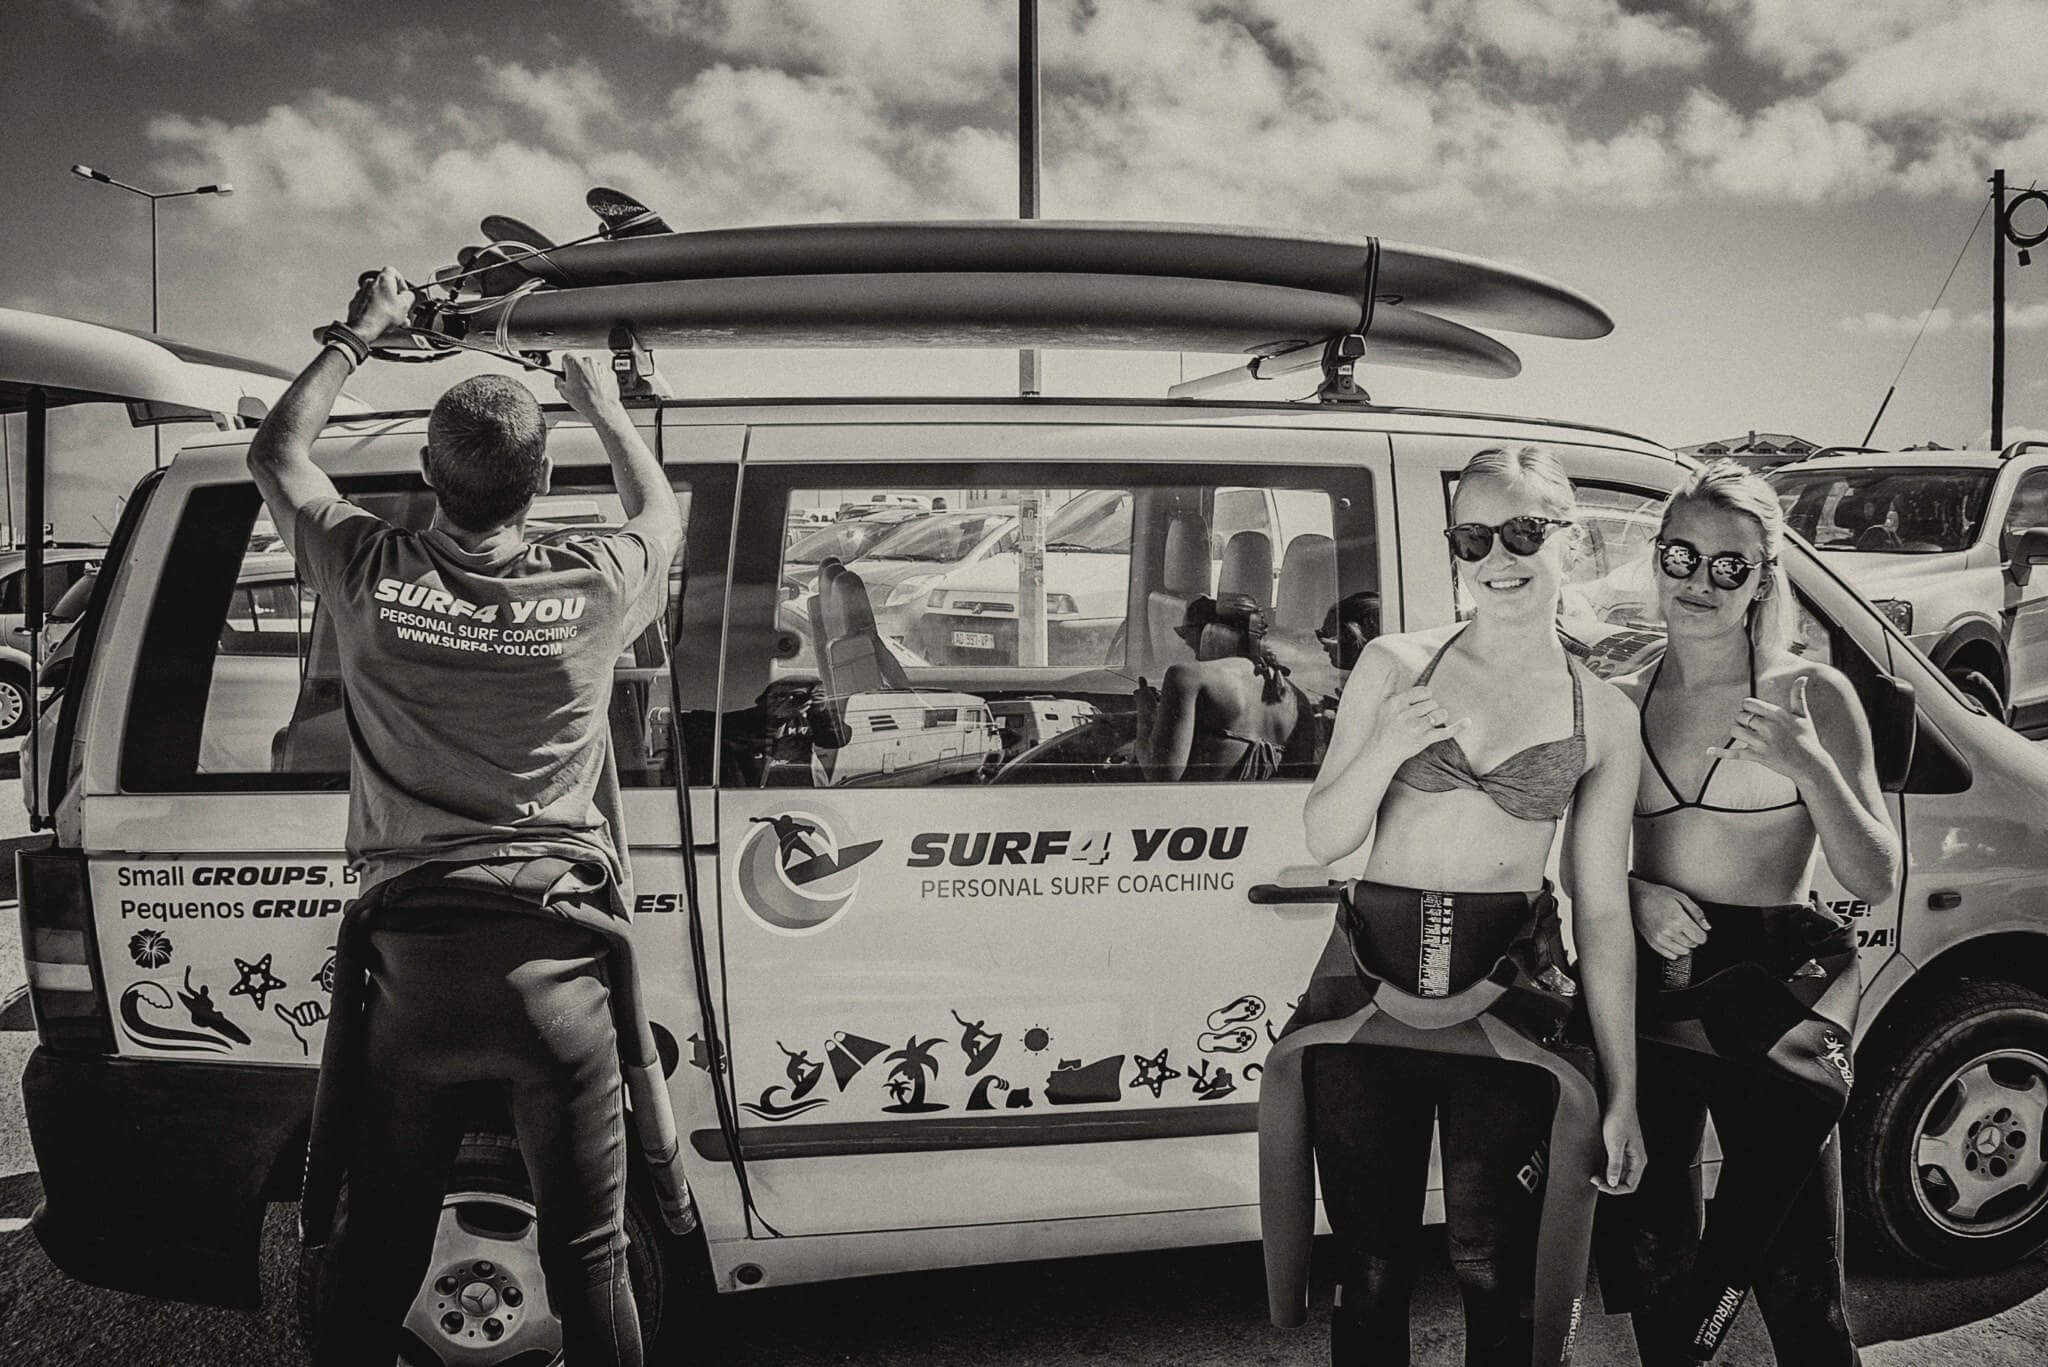 Surfcamp Surf4 You -Personal Surf Coaching  in Nazaré, Leiria, Portugal